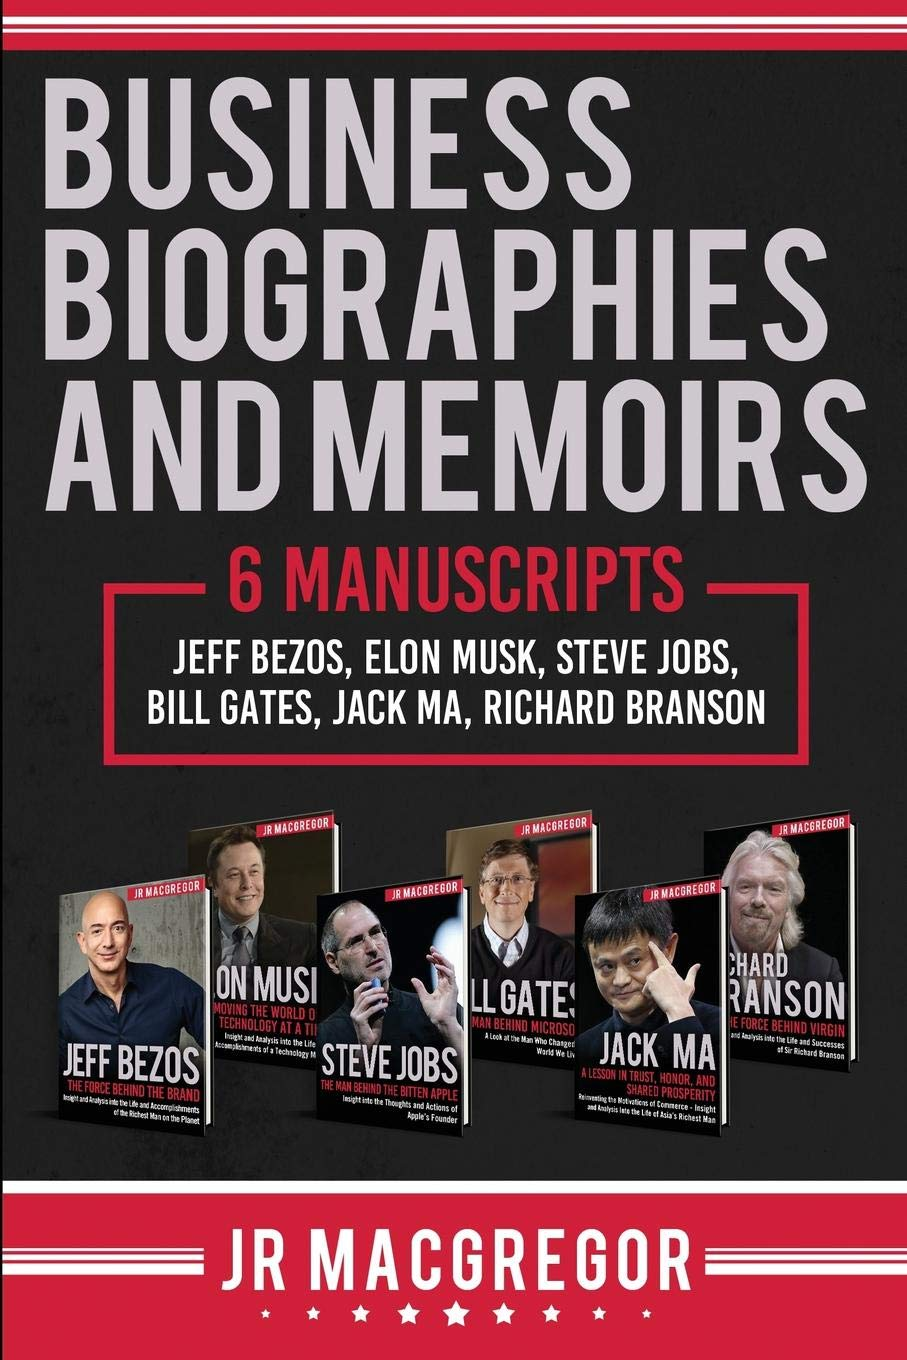 Business Biographies and Memoirs: 6 Manuscripts: Jeff Bezos, Elon Musk,  Steve Jobs, Bill Gates, Jack Ma, Richard Branson: JR MacGregor:  9781948489935: ...